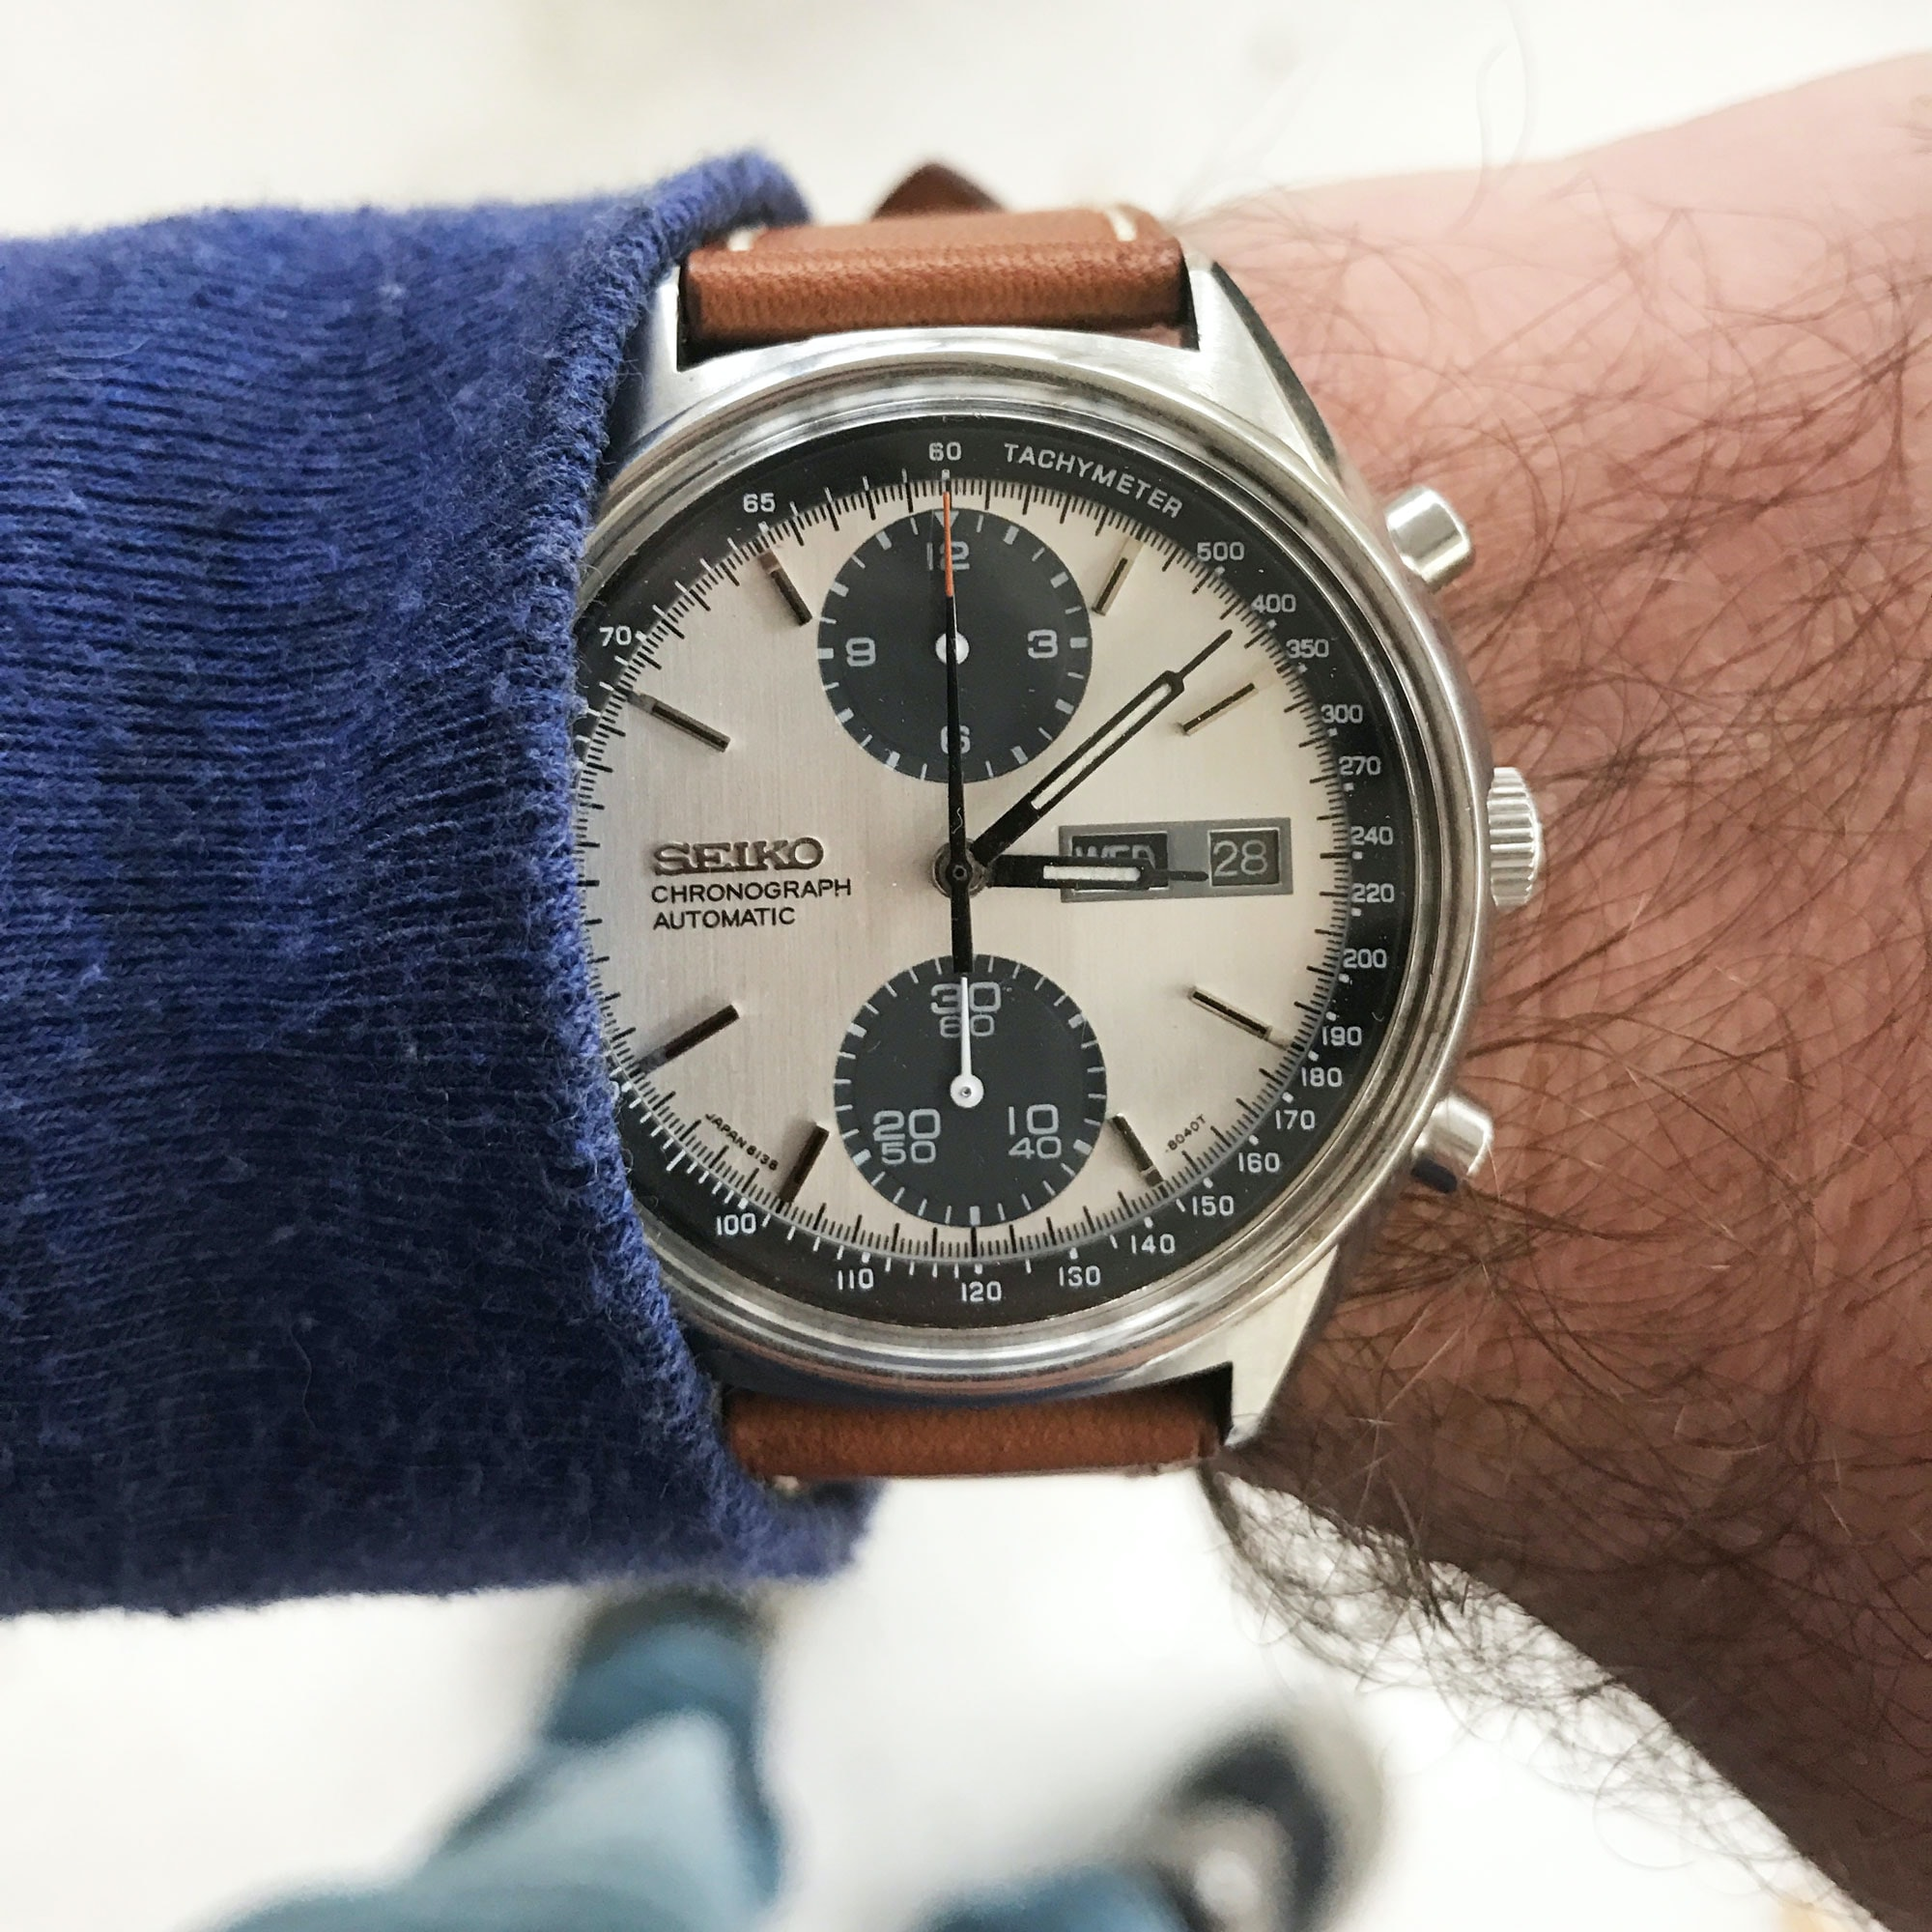 The Watch I Wore The Most In 2016, By Members Of The HODINKEE Team The Watch I Wore The Most In 2016, By Members Of The HODINKEE Team ryan